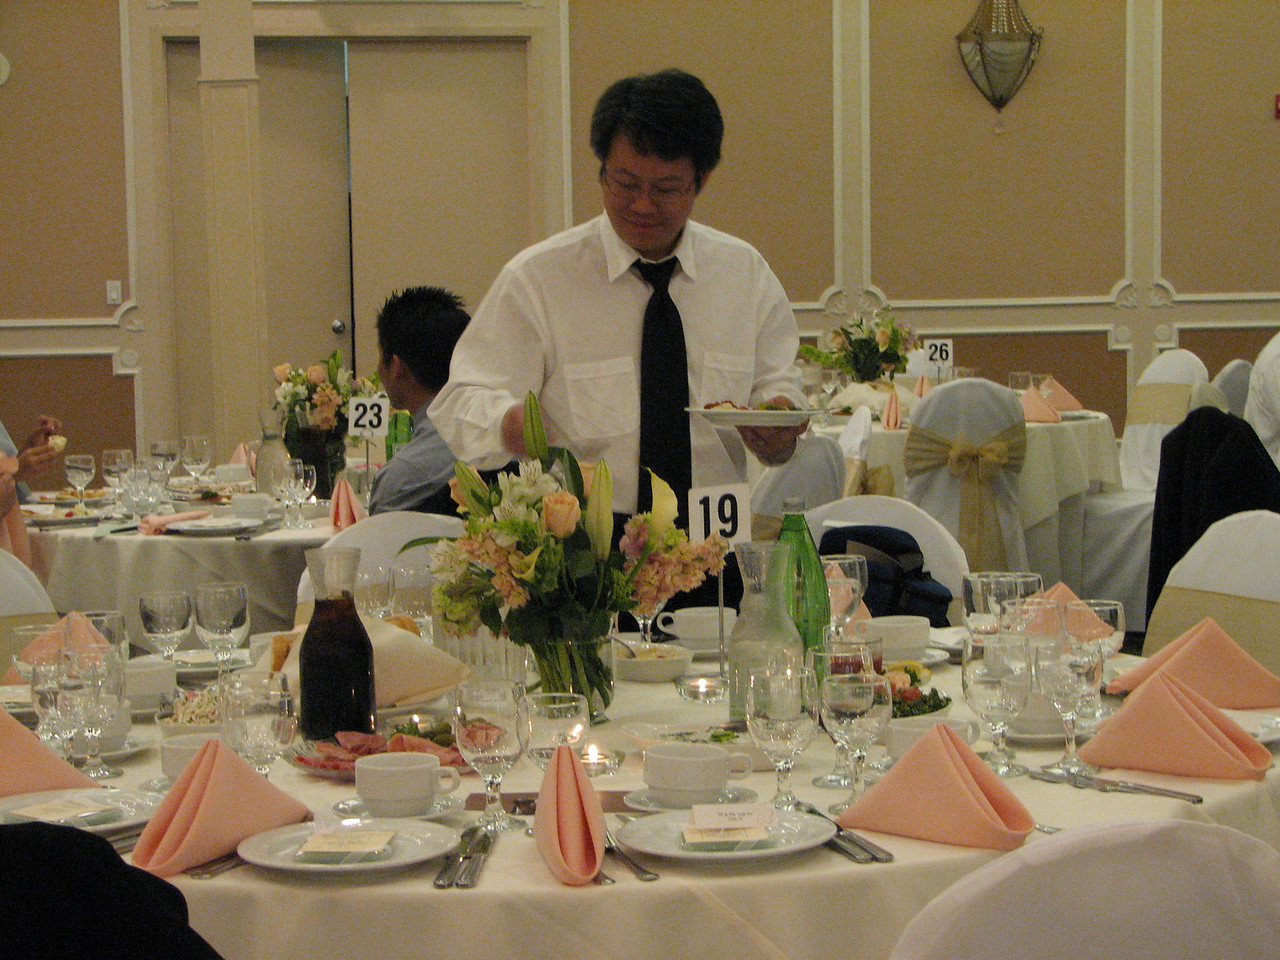 2007 06 09 Sat - Andrew Gi starts the food without us - a recurring theme